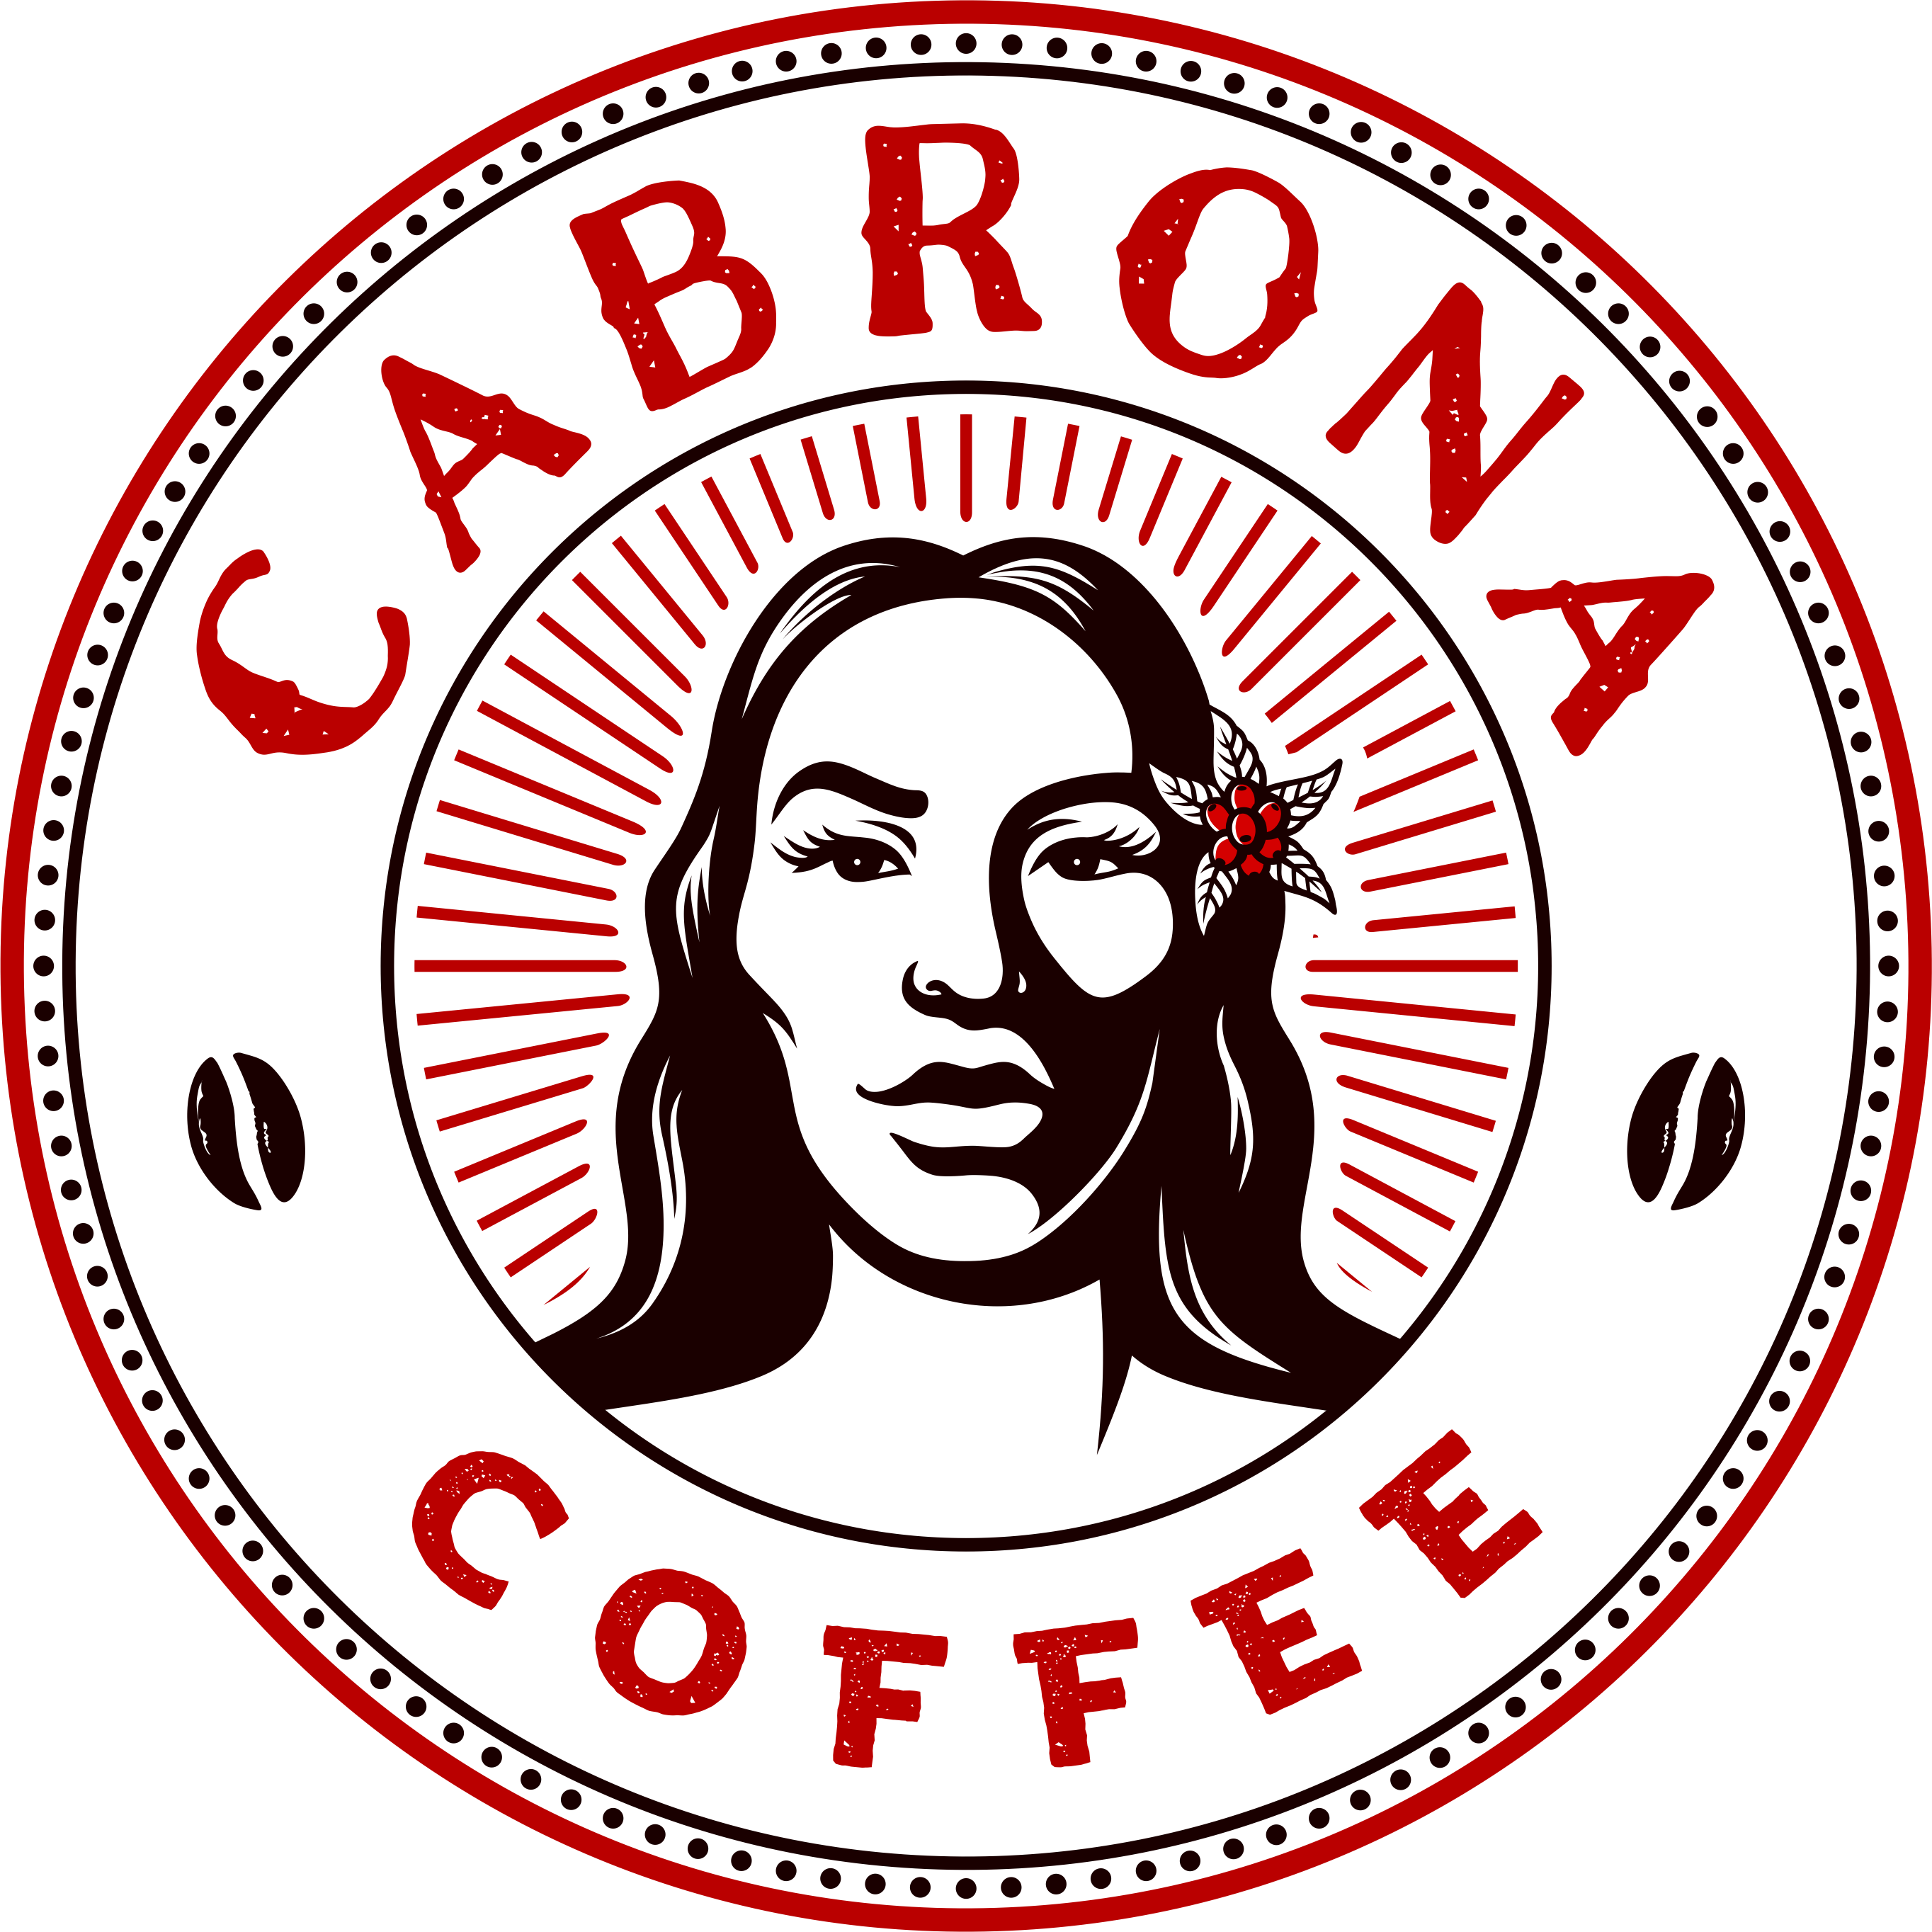 Logo and brand for coffee business